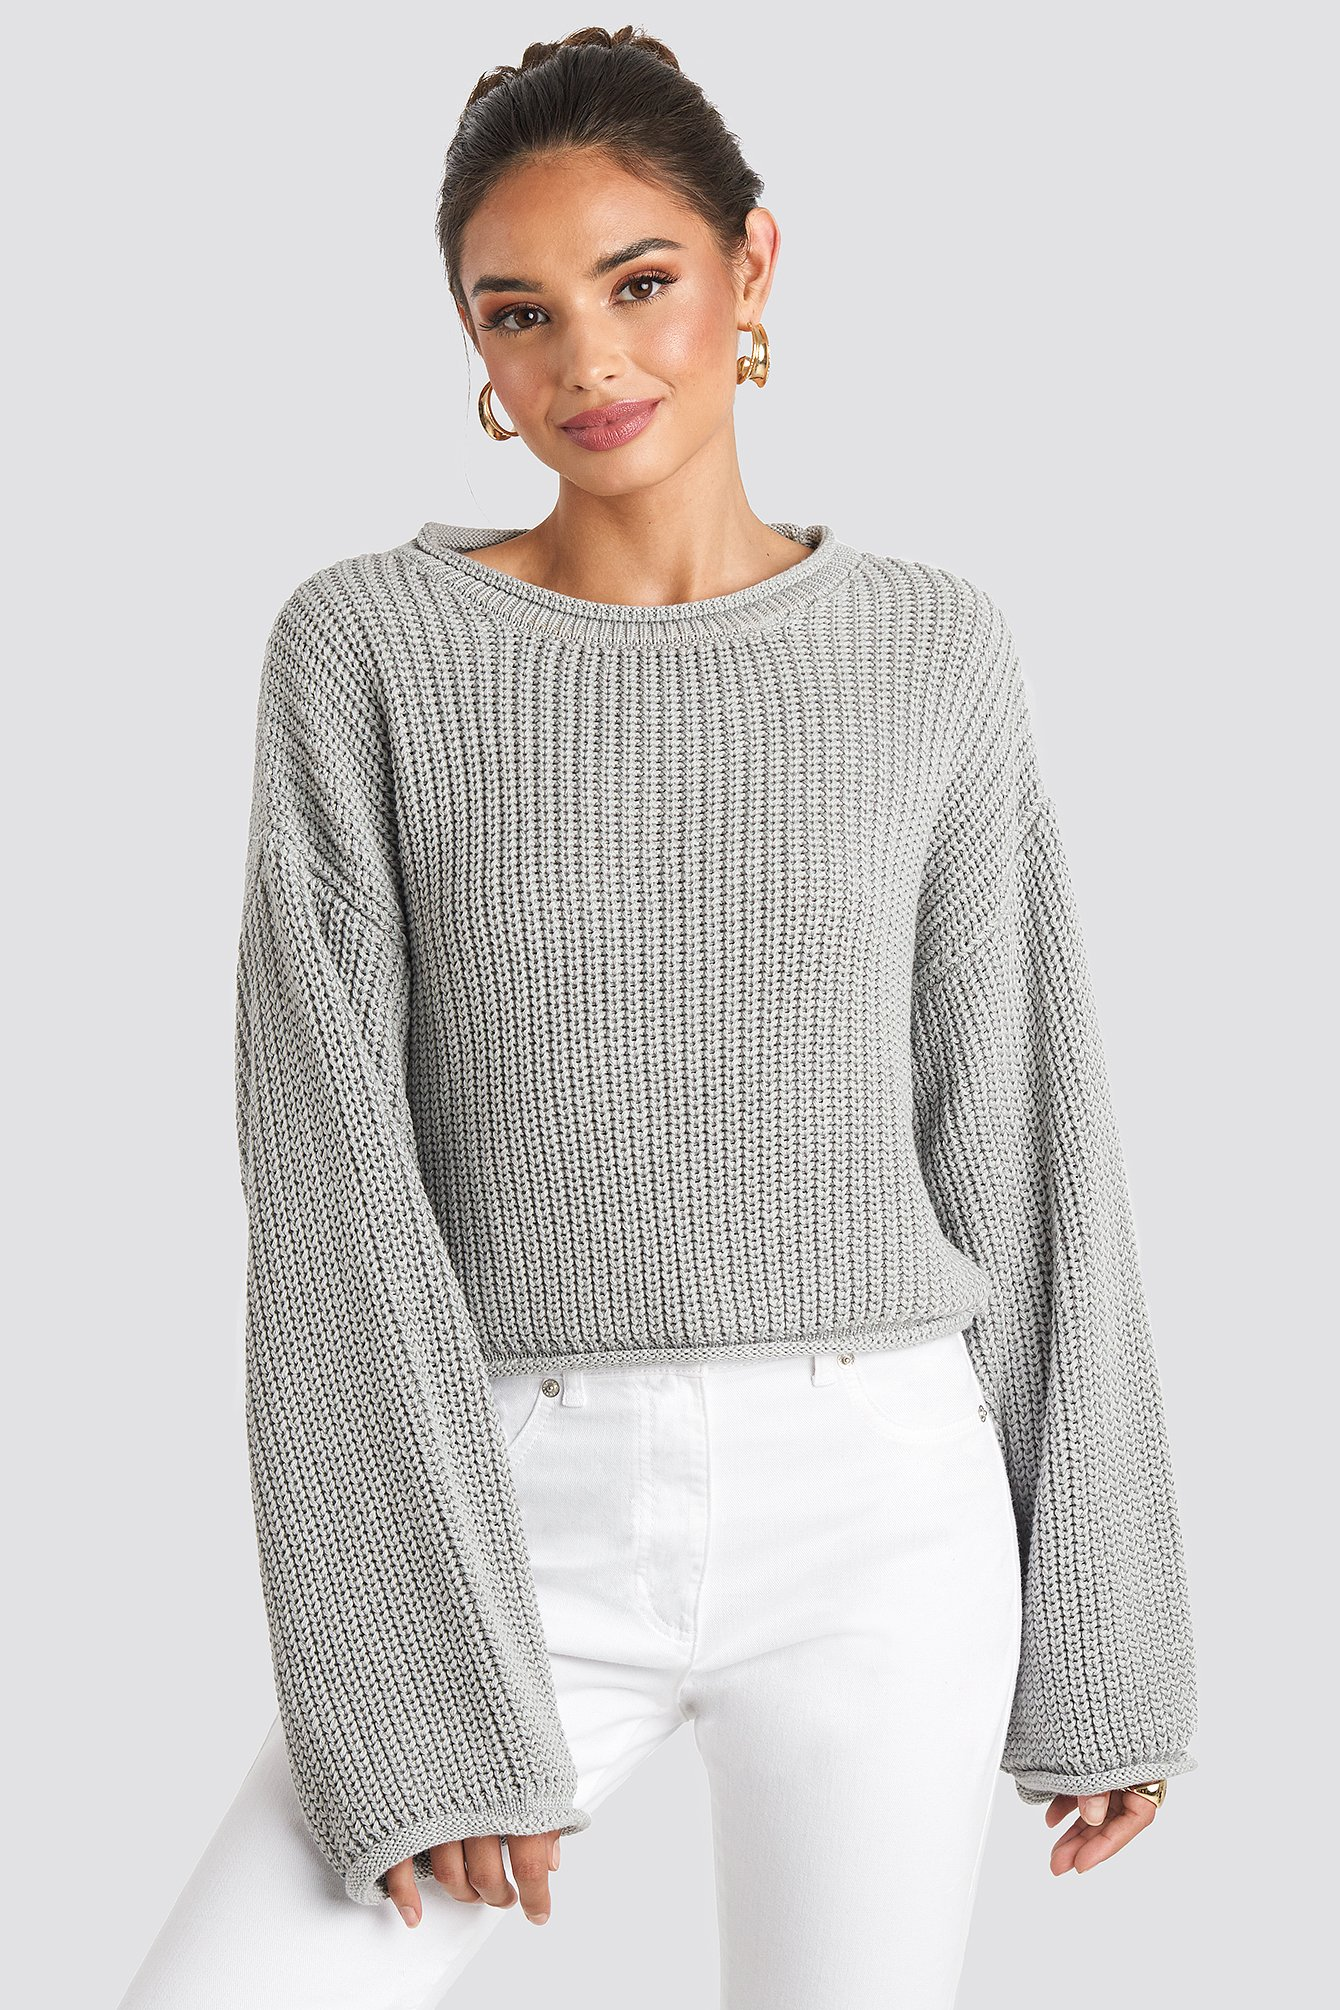 Cropped Boat Neck Knitted Sweater Grey by Na Kd